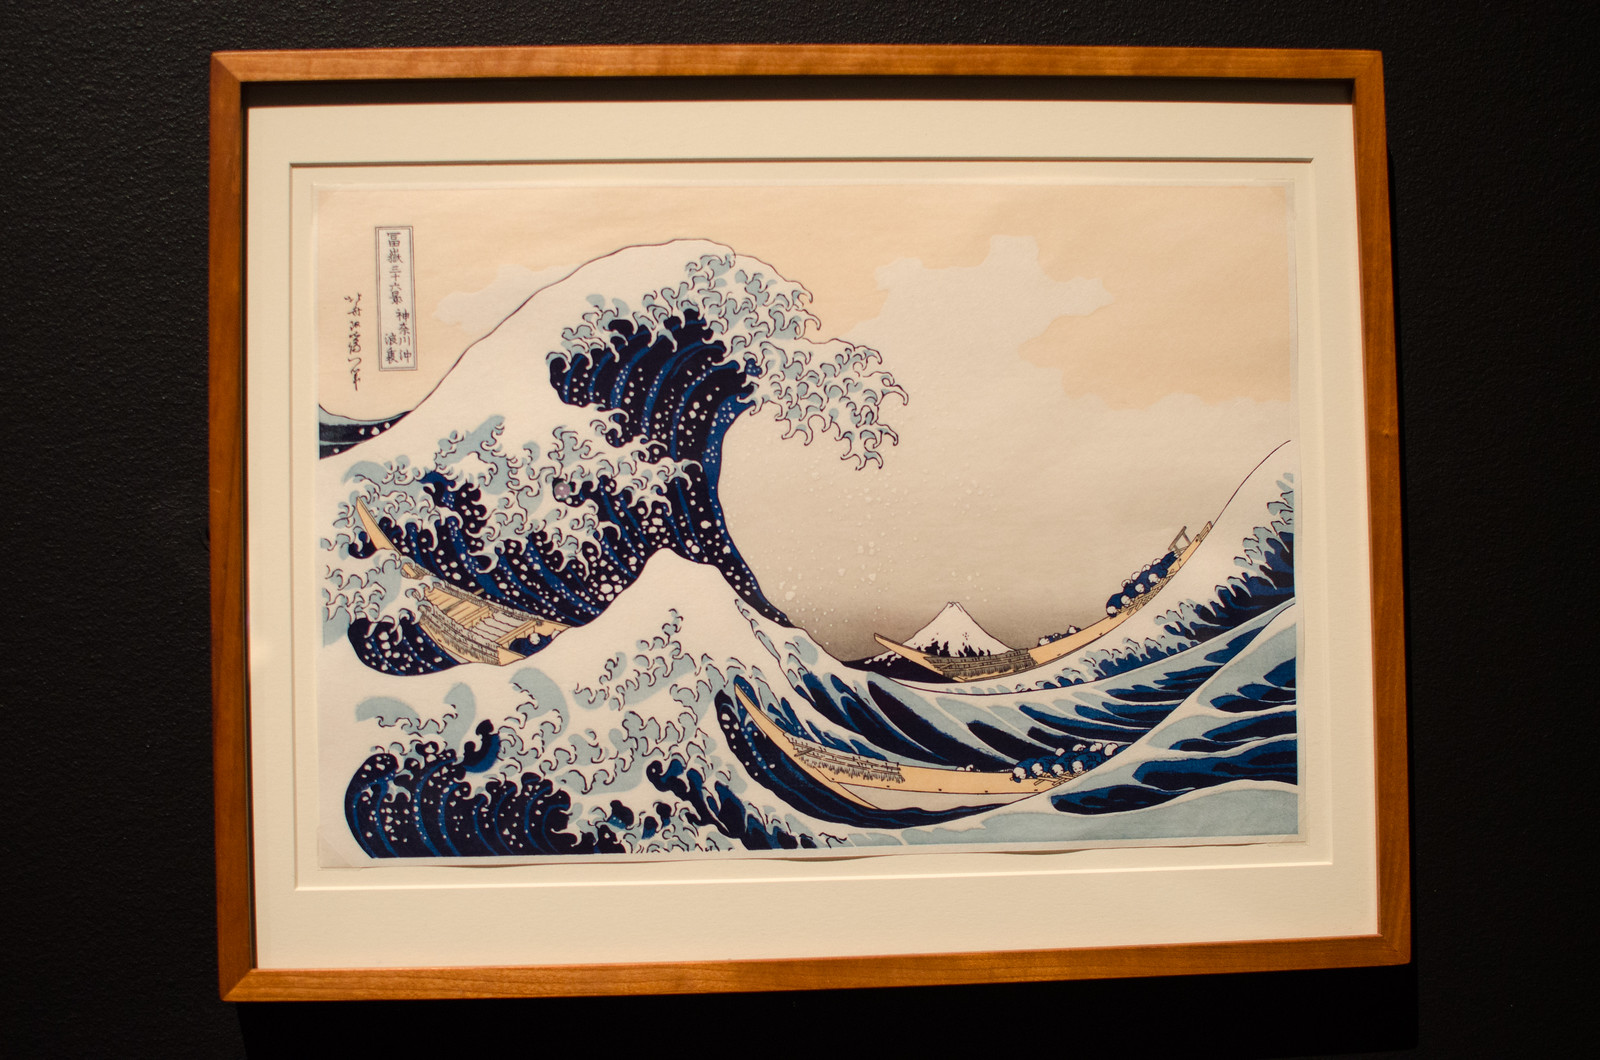 a80072b708679 The History of 'The Great Wave': Hokusai's Most Famous Woodblock Print